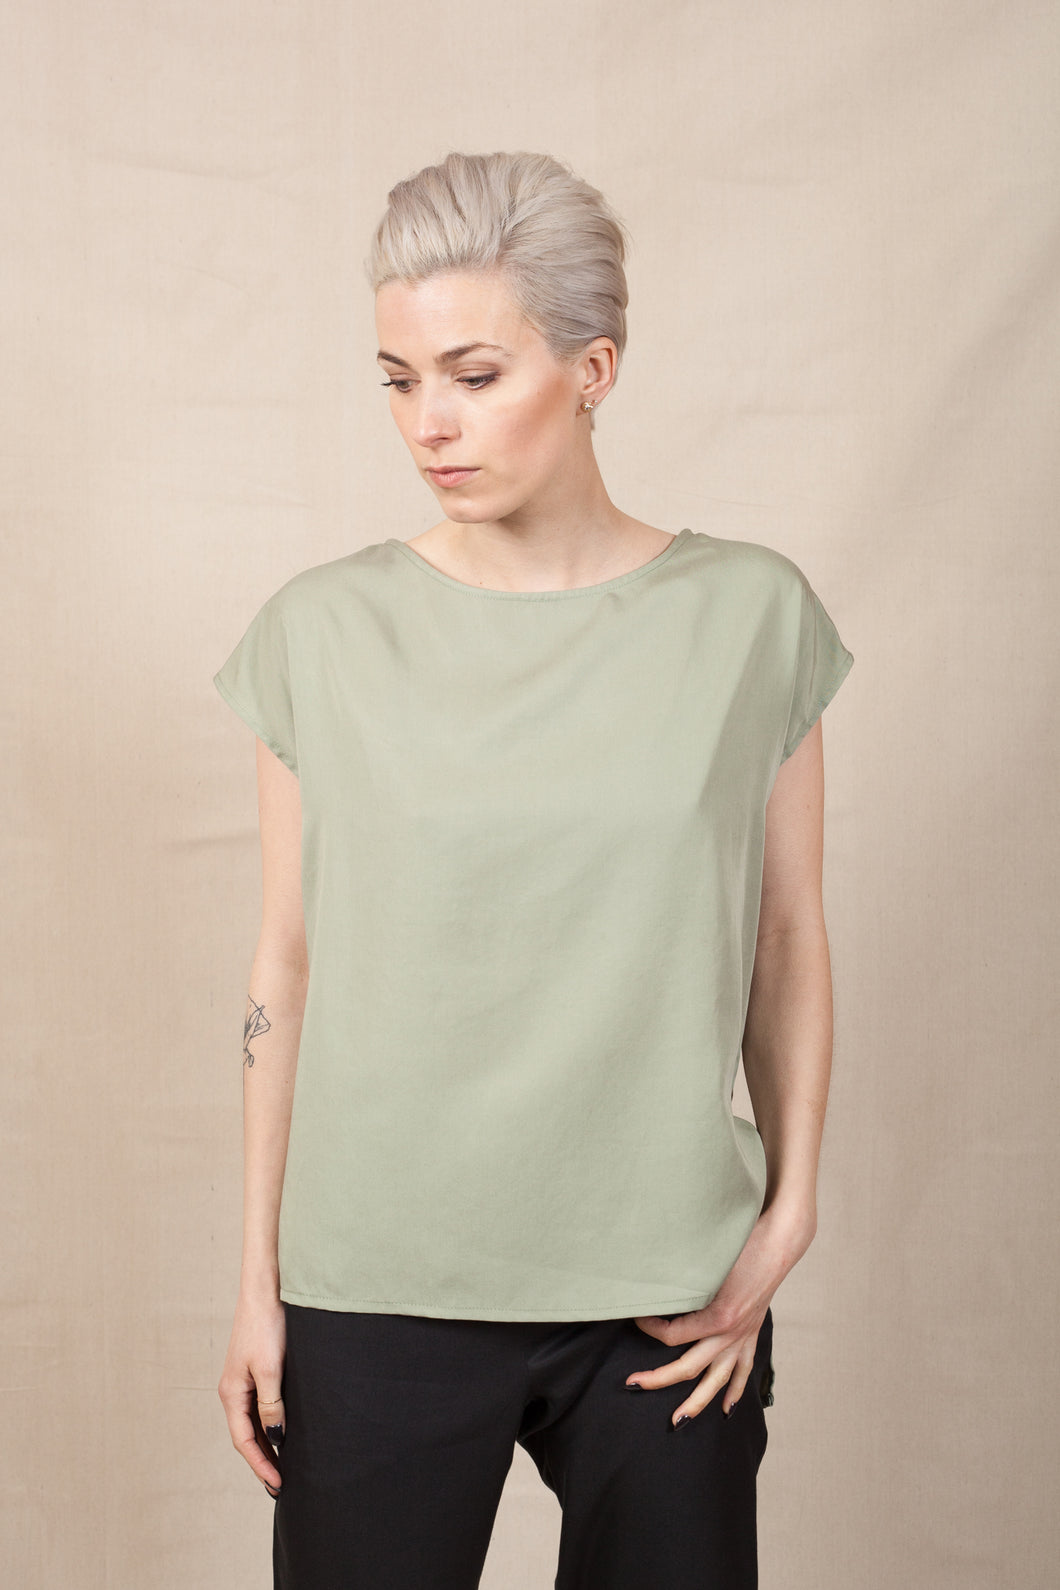 THE CLASSIC TANK - Sage Green